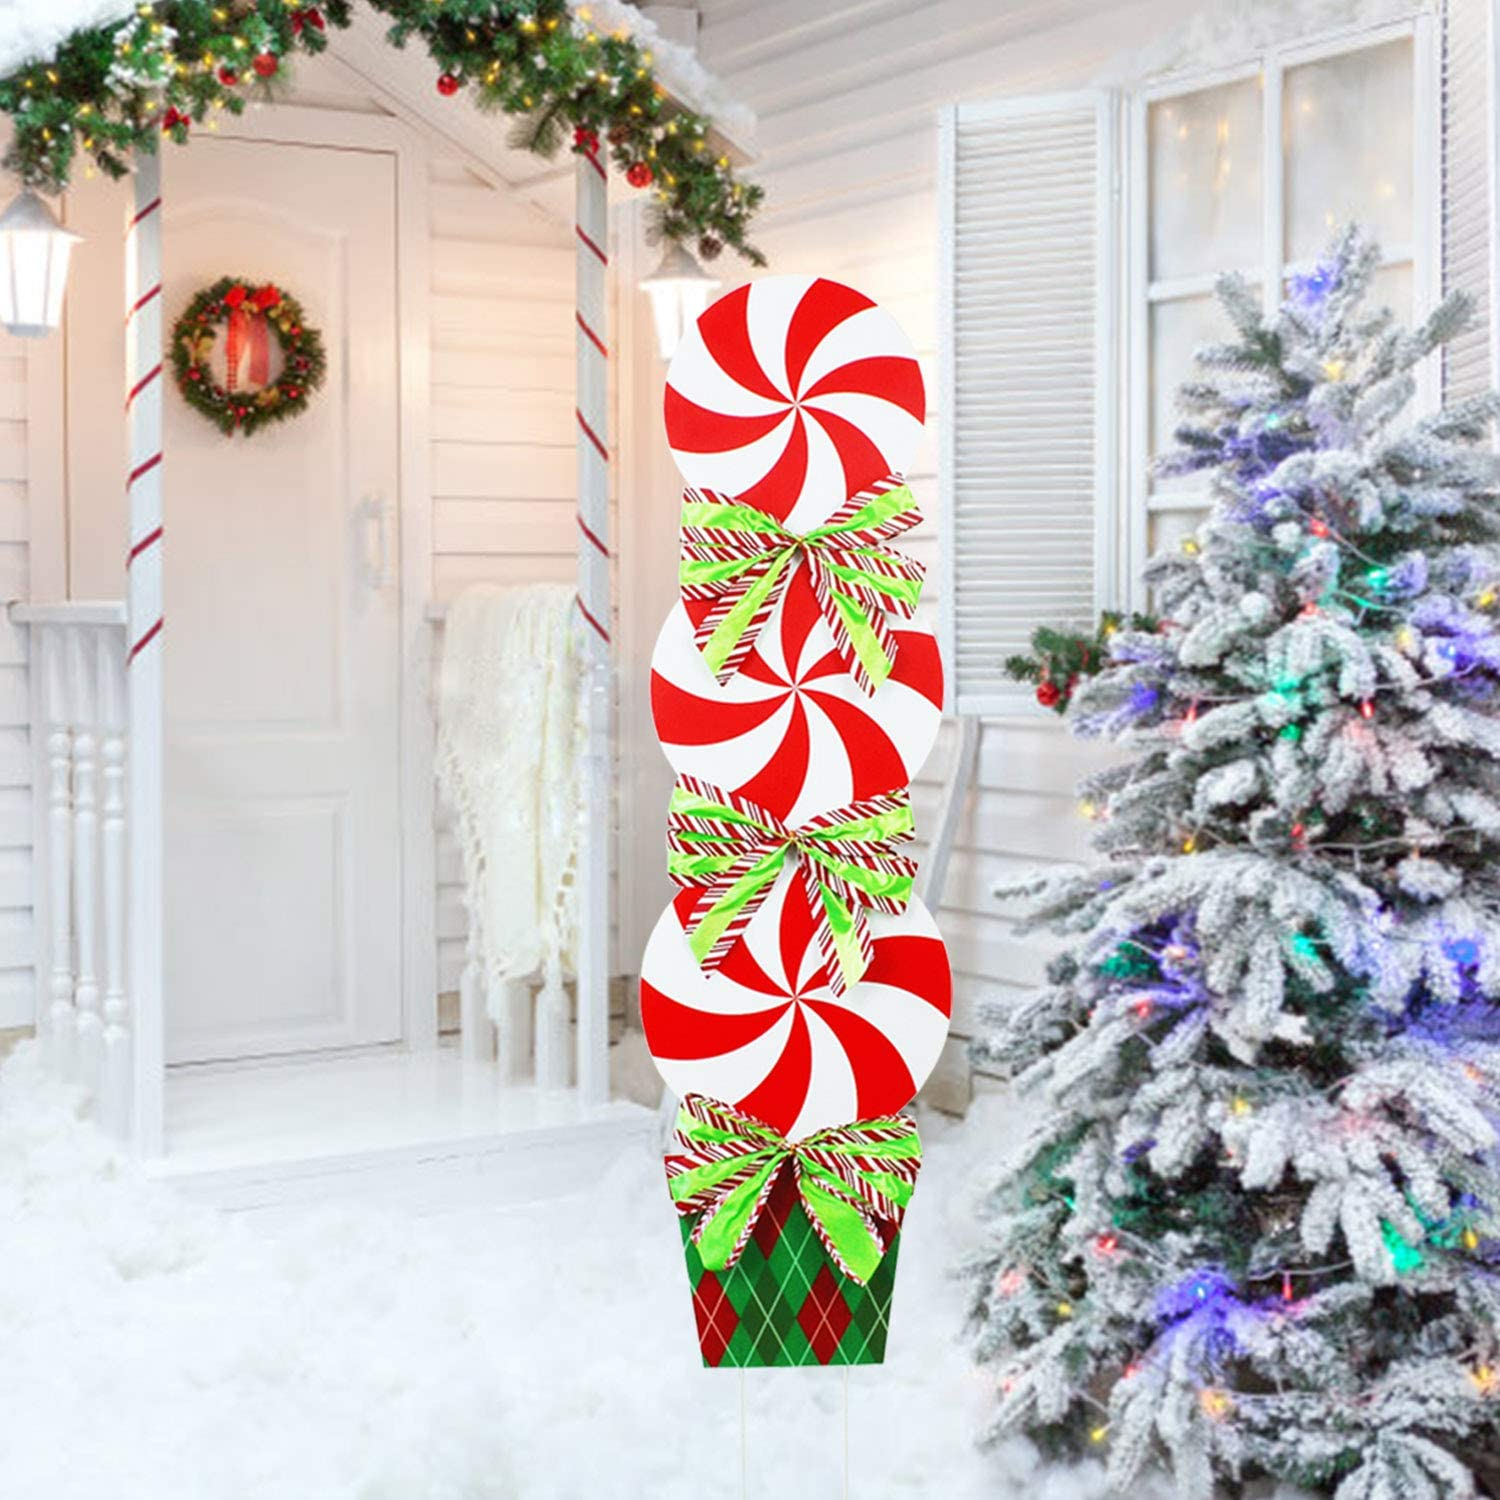 JSY-UP Christmas Decorations Outdoor -44In Candy Xmas Yard Stakes Signs- Halloween New Year Holiday Grinch Christmas Decor for Lawn Pathway Walkway Candyland Party Themed Party